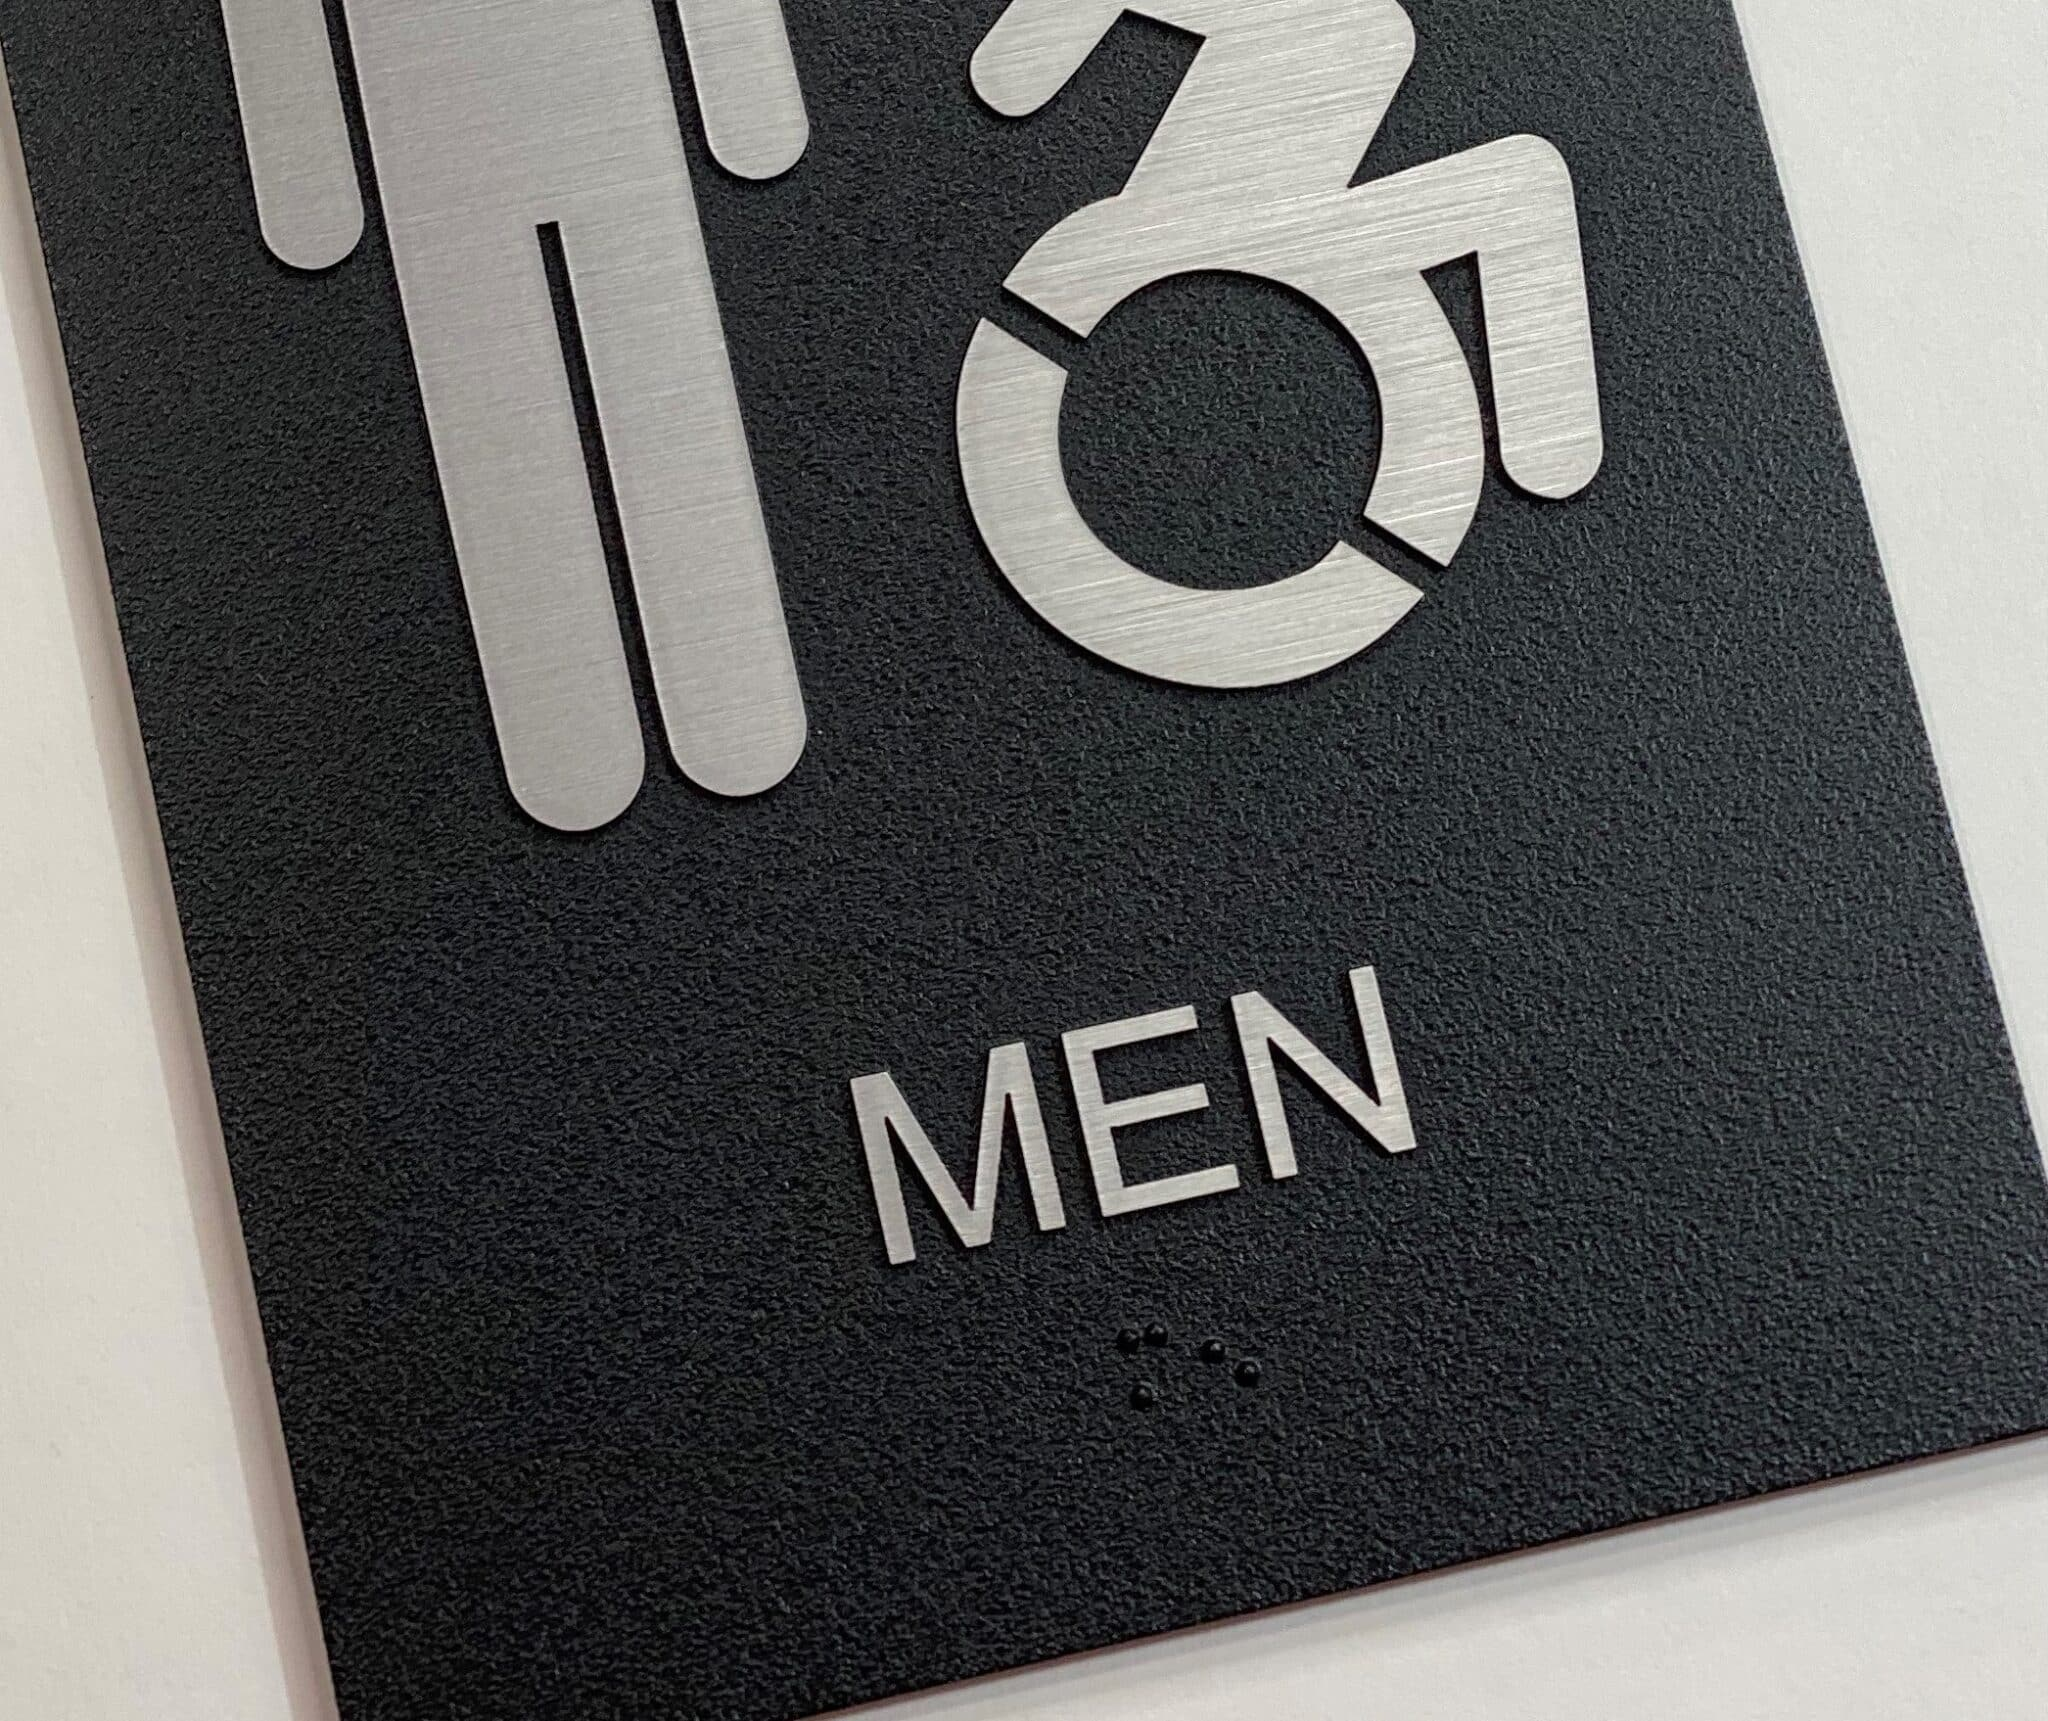 Exterior Mens Restroom Sign, braille close up